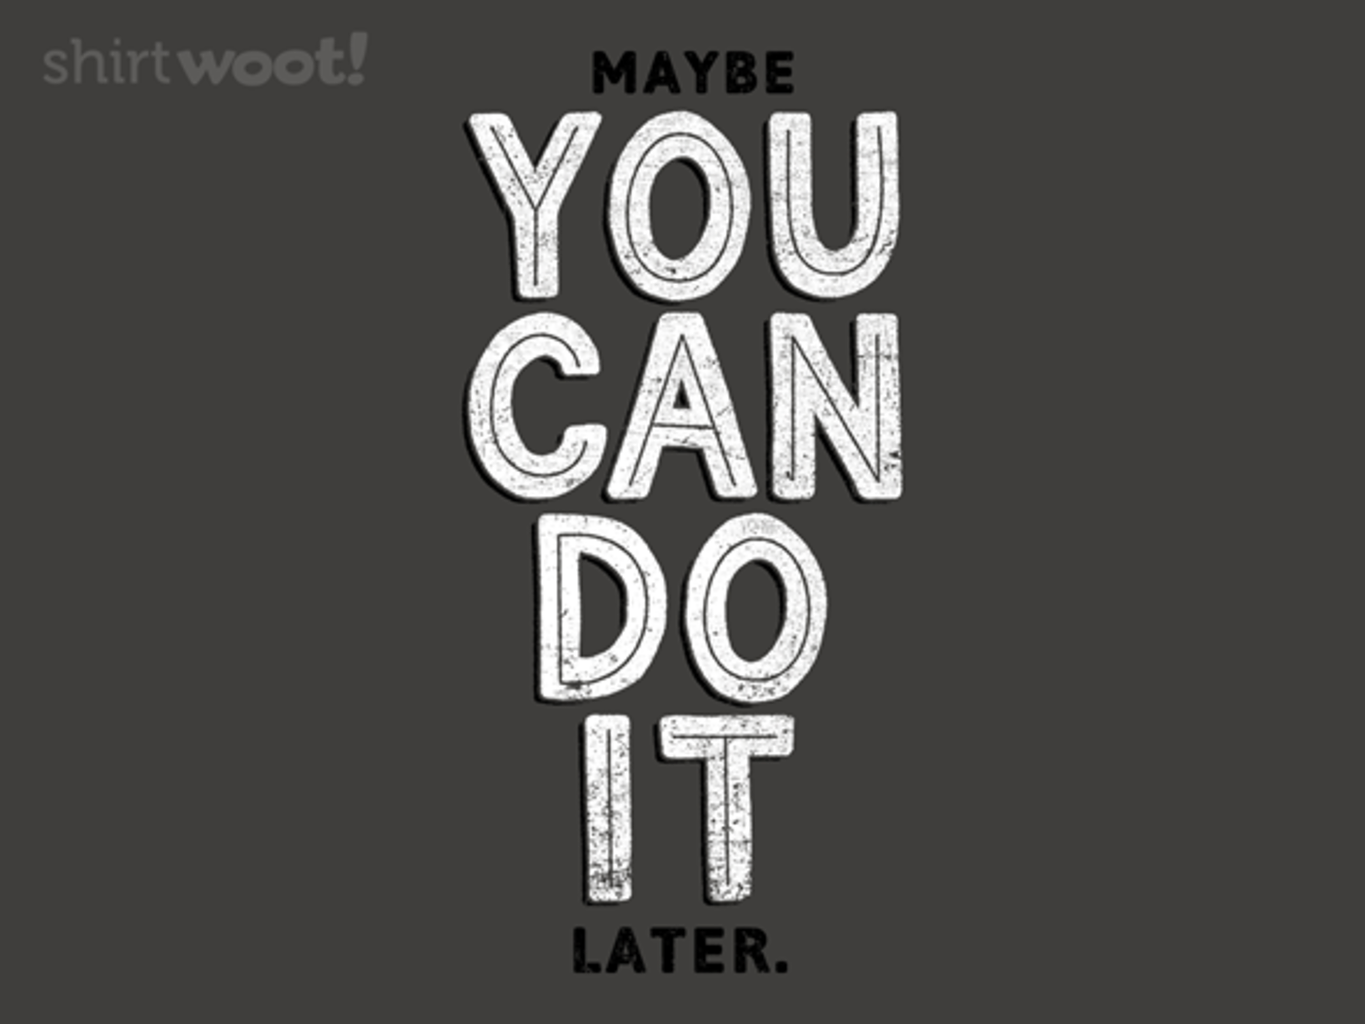 Woot!: You Can Do it!